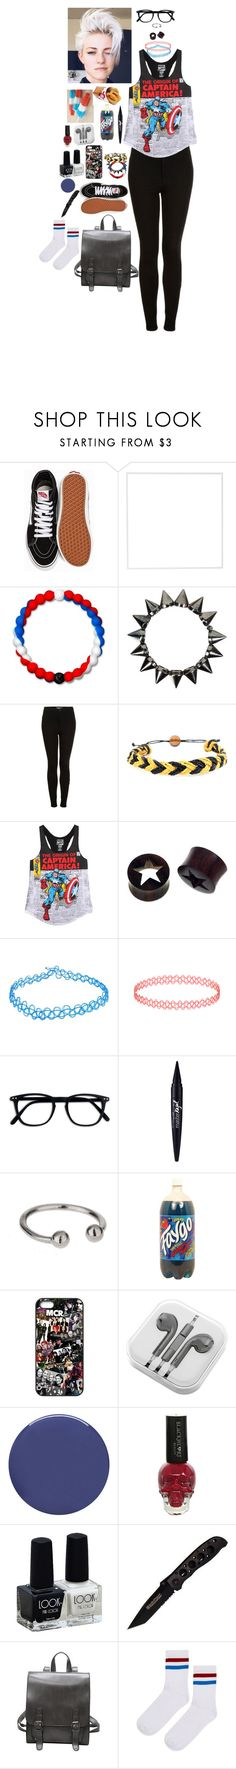 """HAPPY FOURTH OF JULY"" by mimikyu ❤ liked on Polyvore featuring Disney, Vans, Menu, Lokai, Jagged Culture, Topshop, Domo Beads, Marvel, NOVICA and Maybelline"